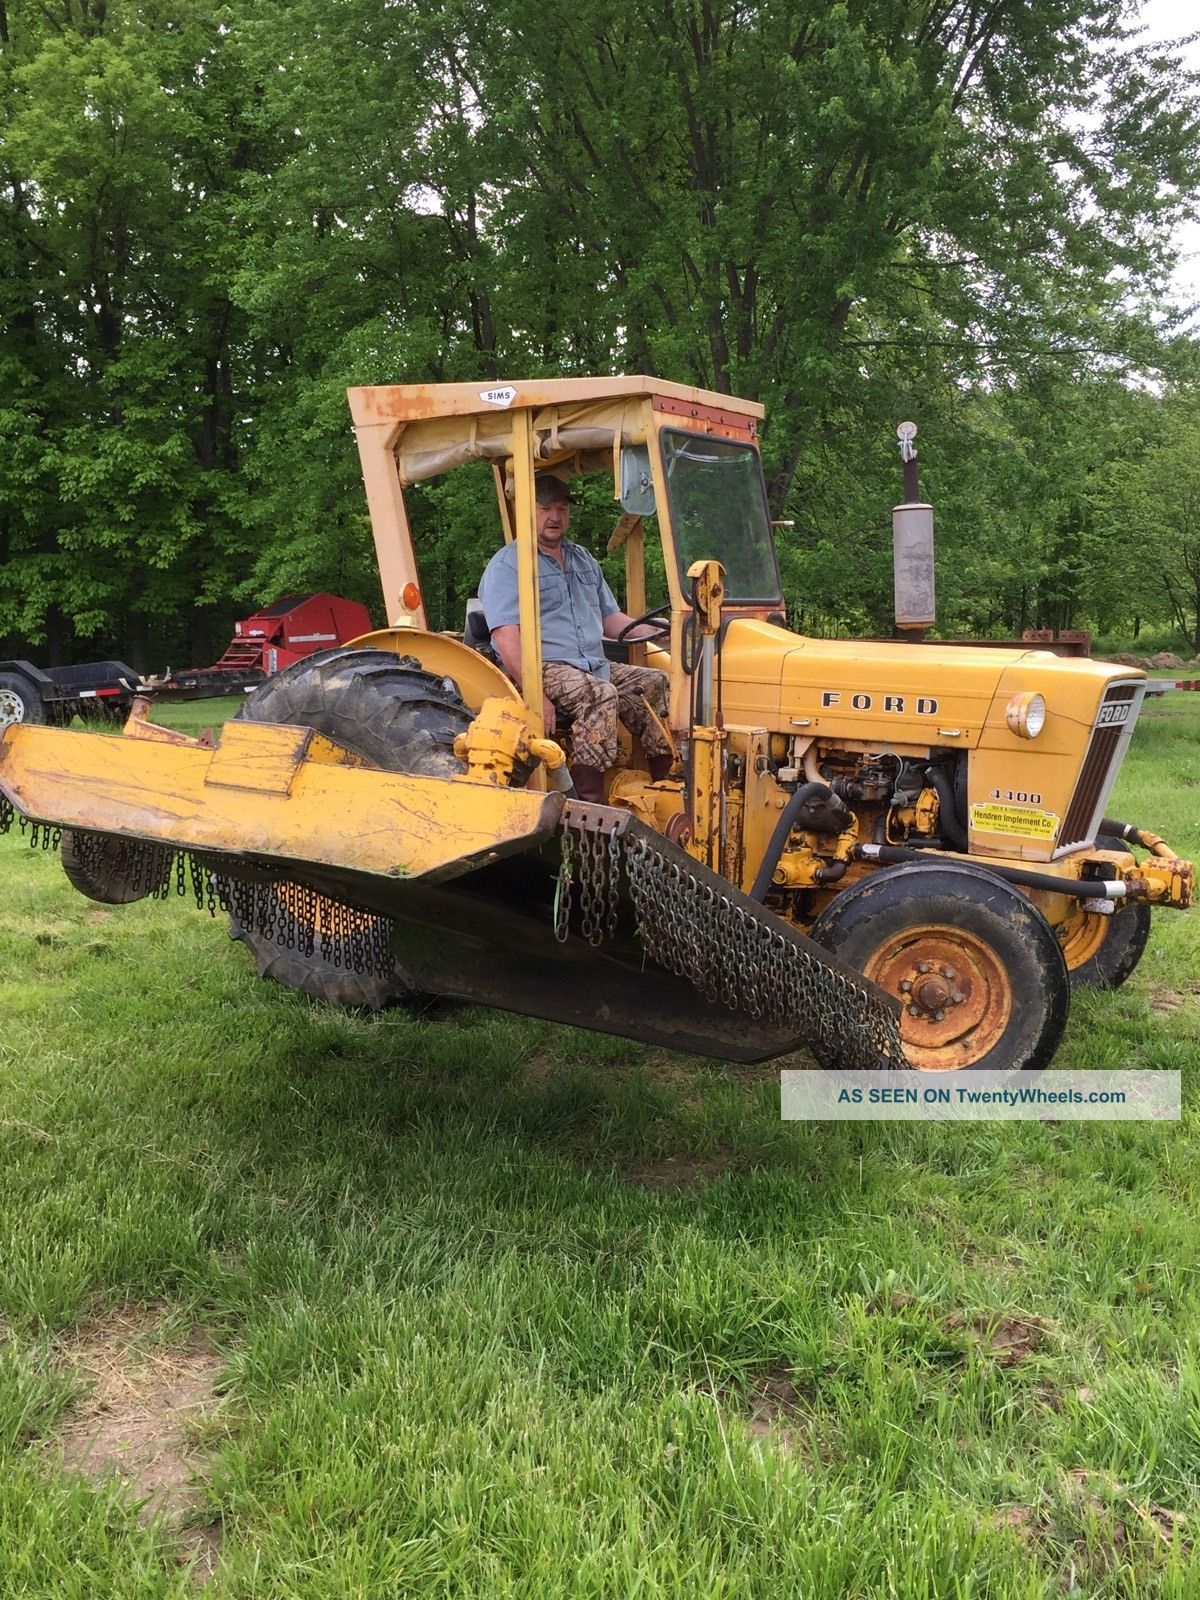 Ford 4400 Industrial Tractor : Ford industrial tractor with side mower